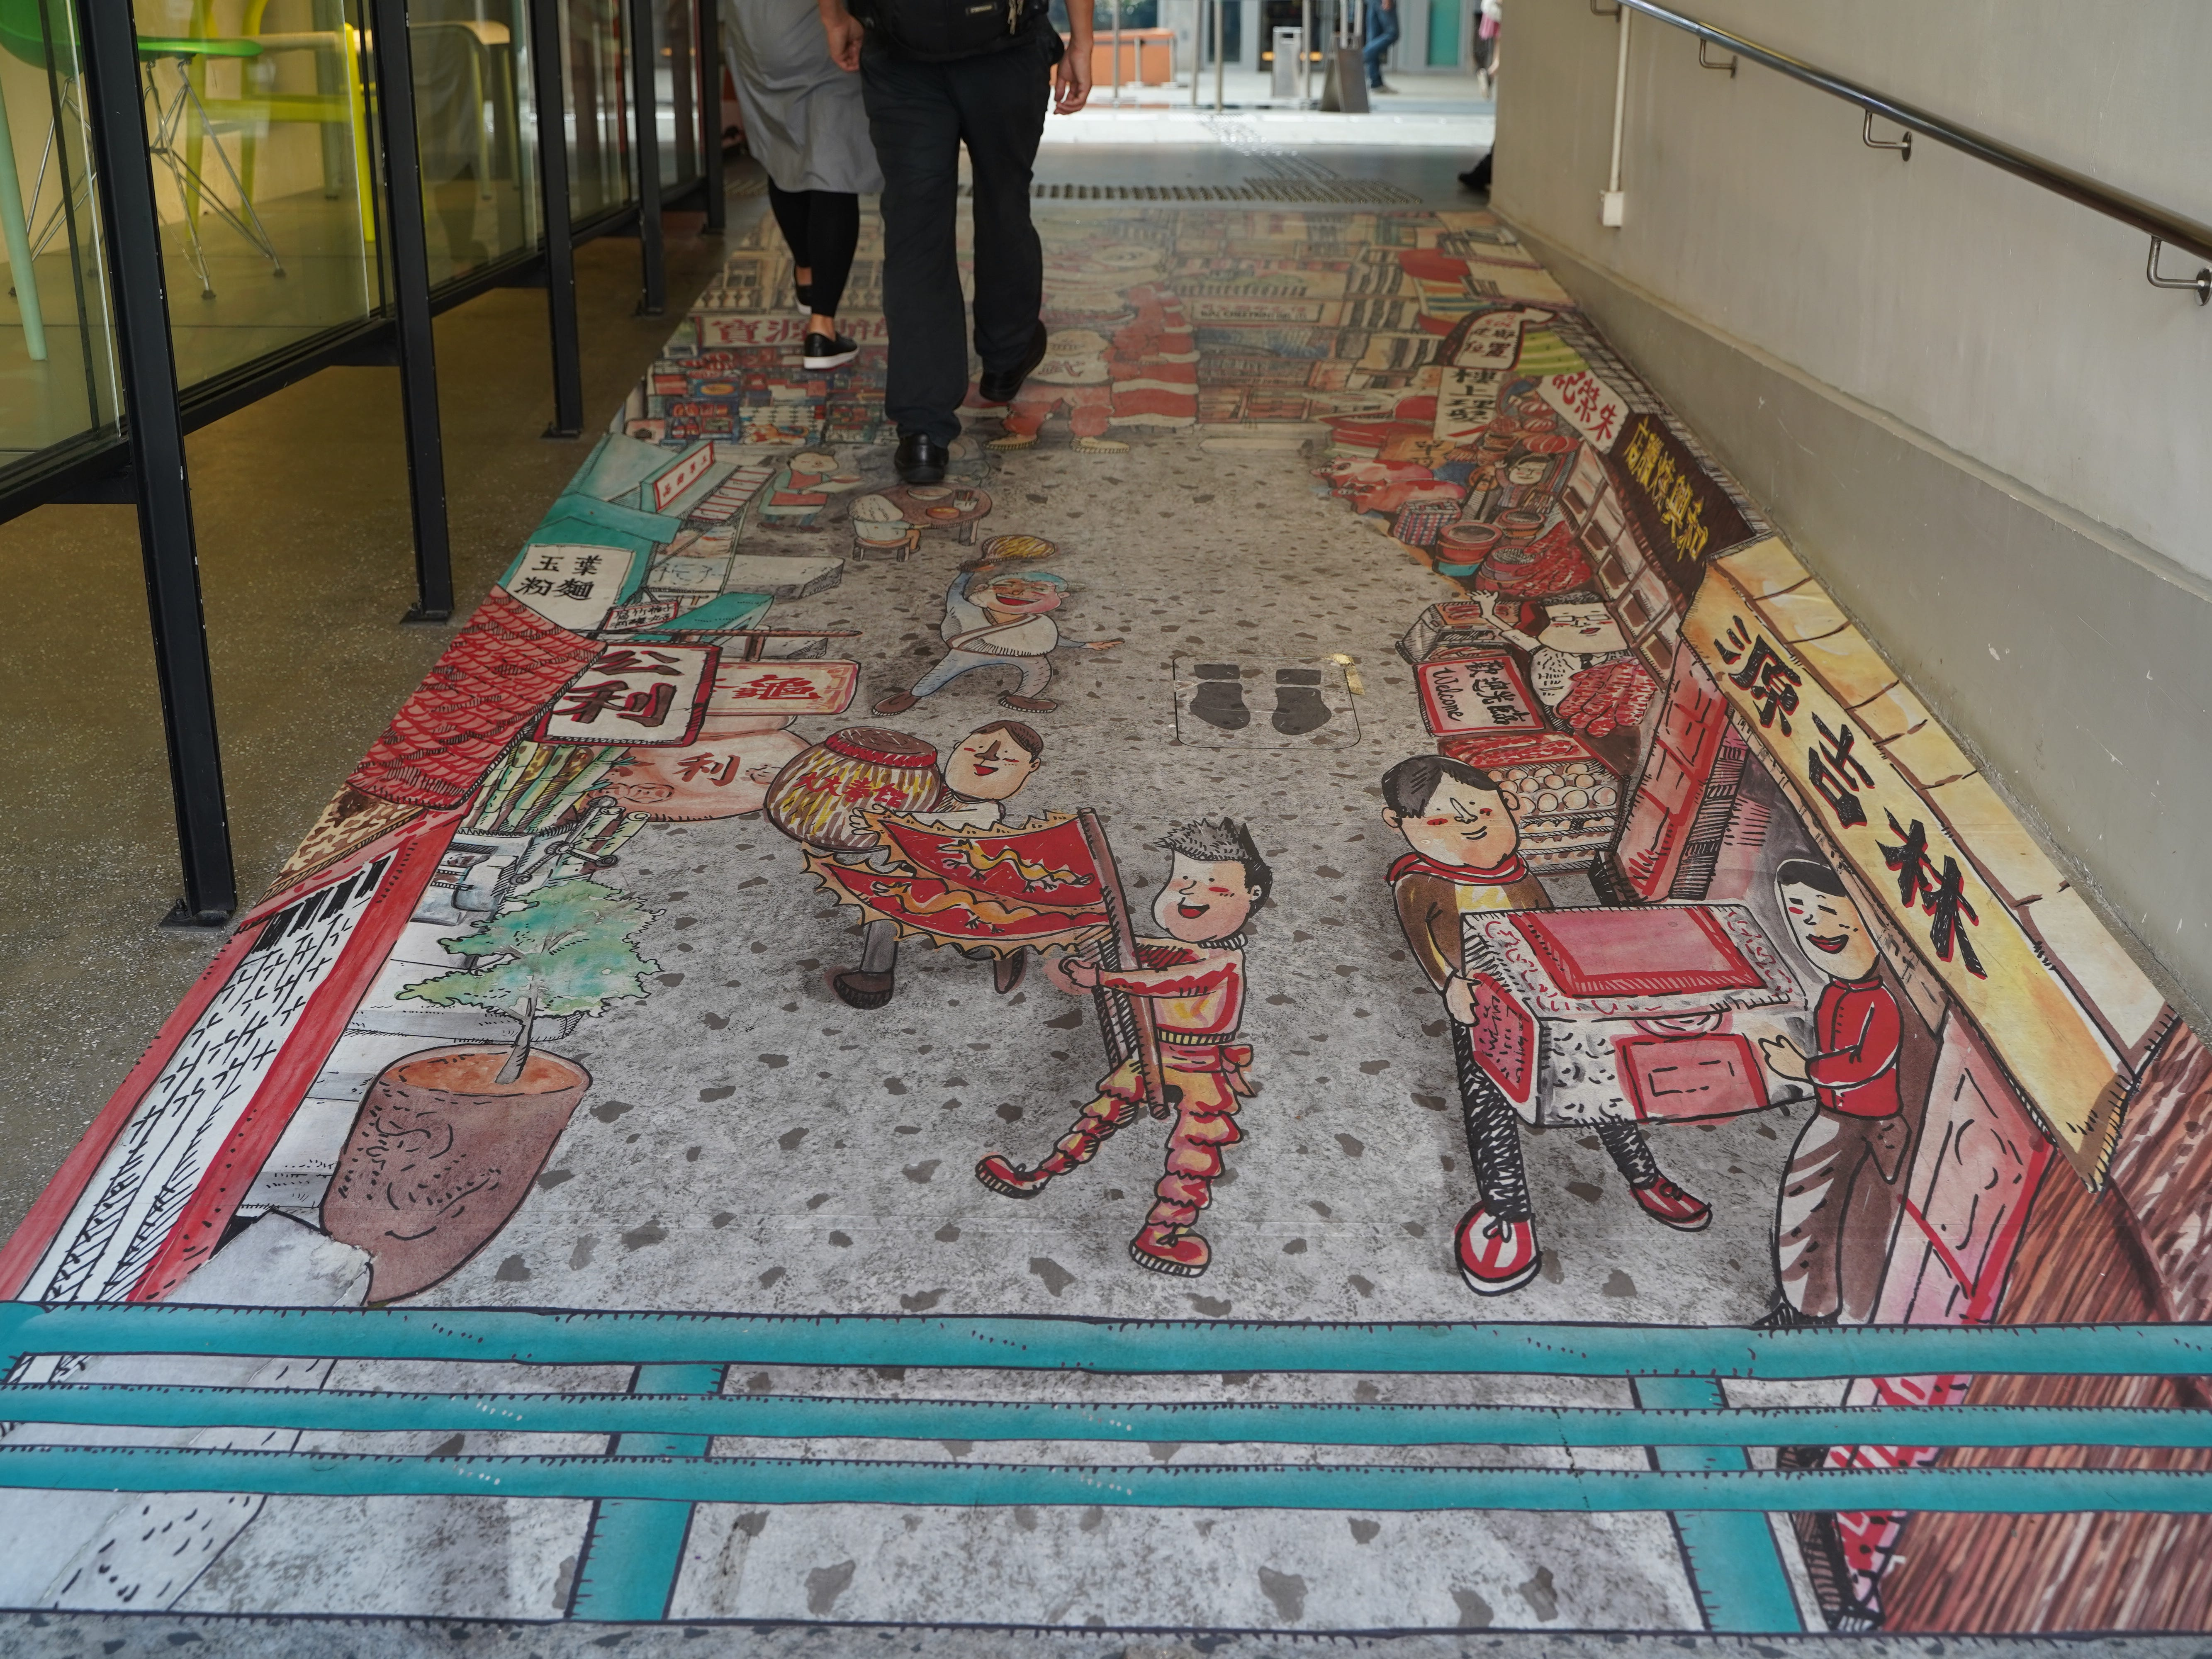 Even the floors are a work of art at Hong Kong's PMQ arts center.